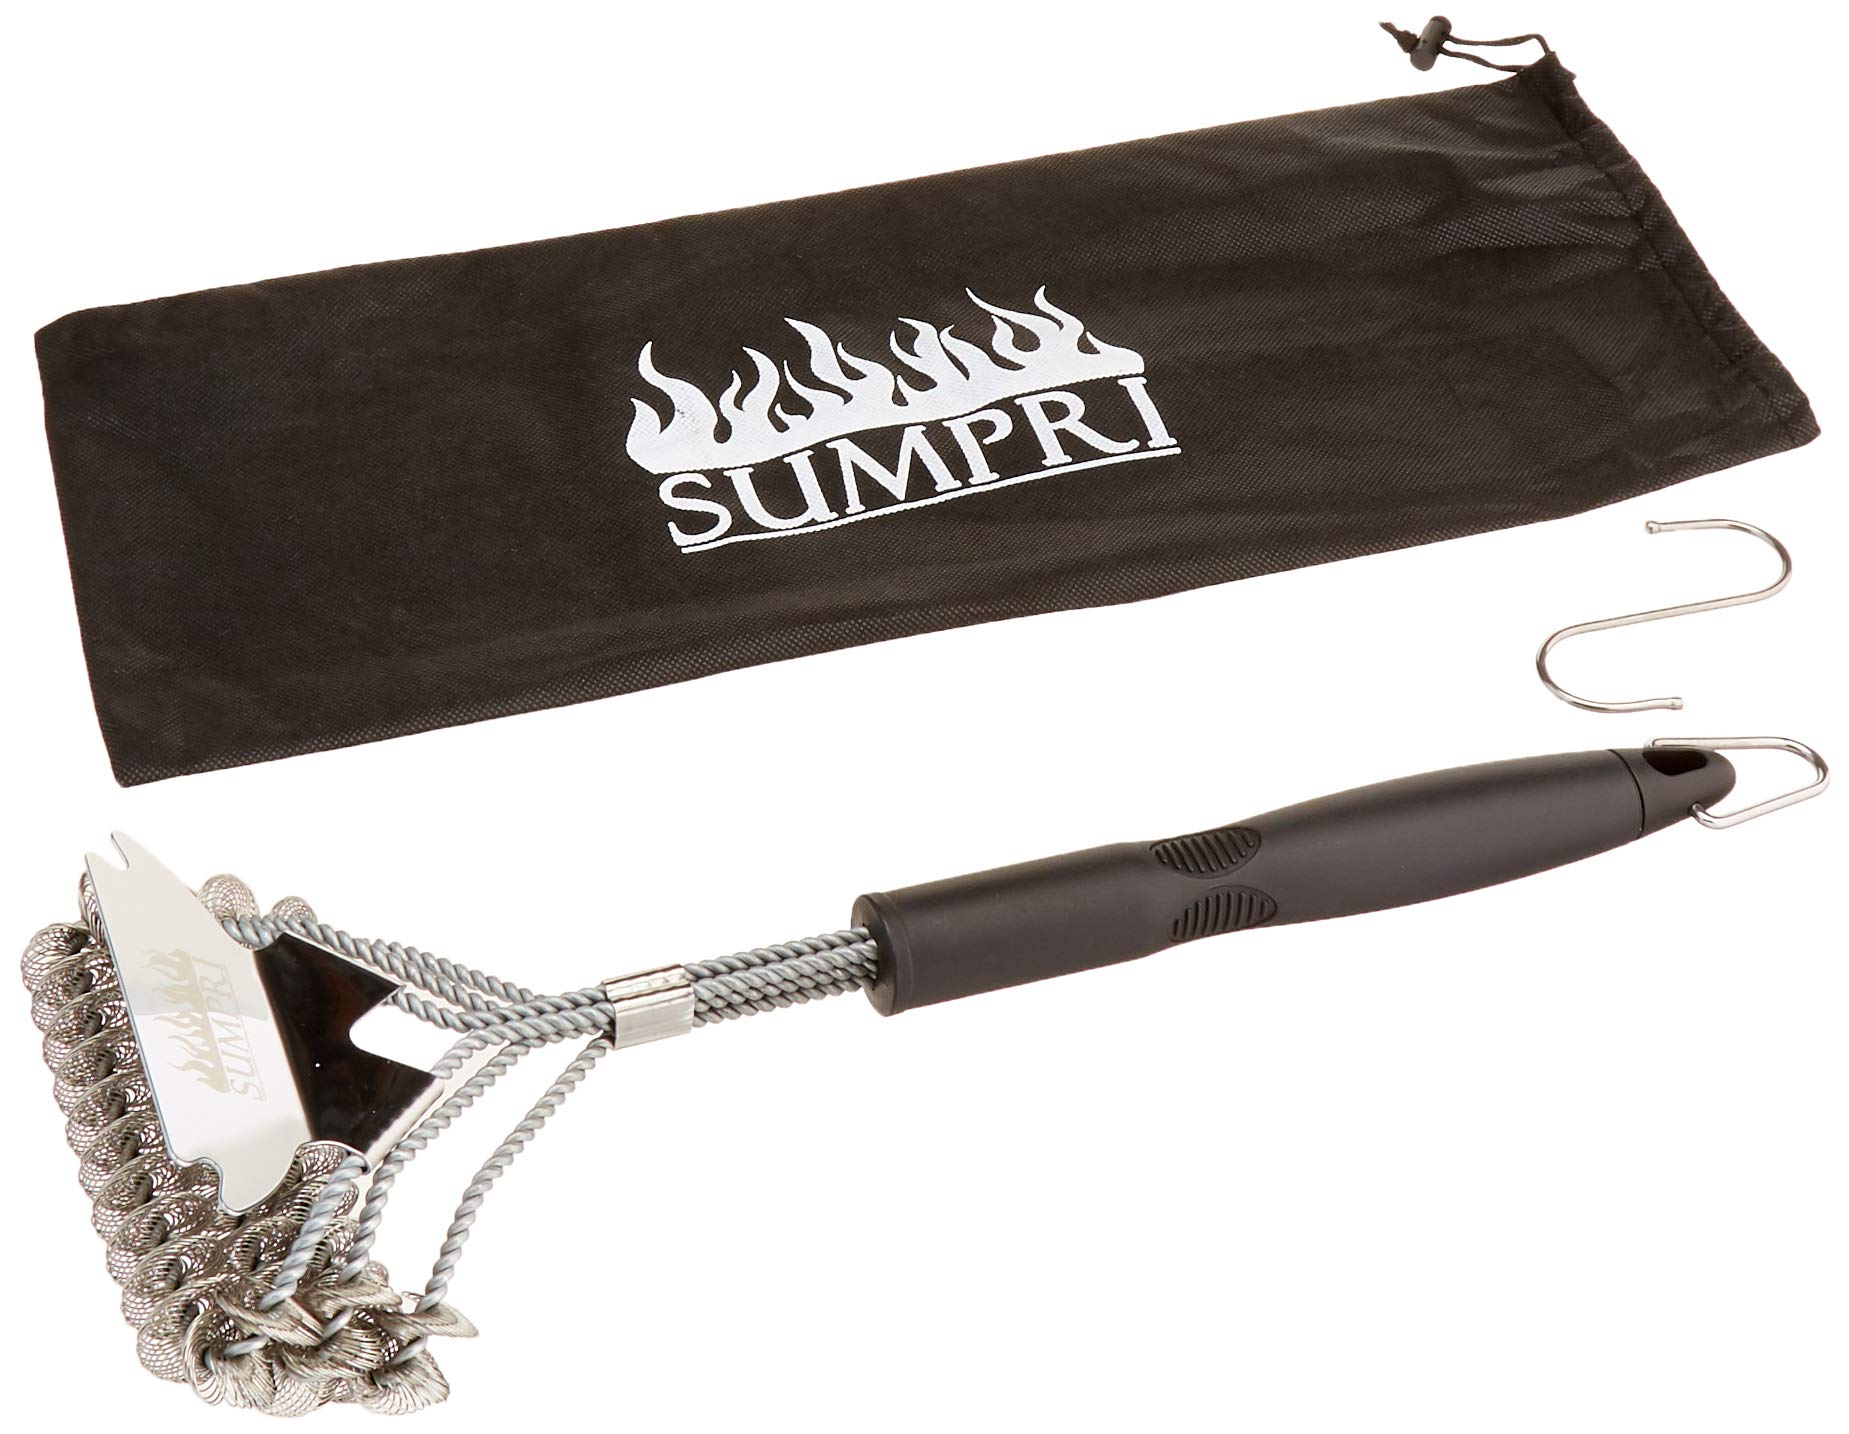 SUMPRI Grill Brush and Scraper -Best Bristle Free Safe BBQ Grate Cleaner -Barbecue Cleaner for Porcelain, Ceramic, Iron, Gas/Charcoal Grill -18 Inch Stainless Steel, Bq Bristles Cleaning Brush (Flat)